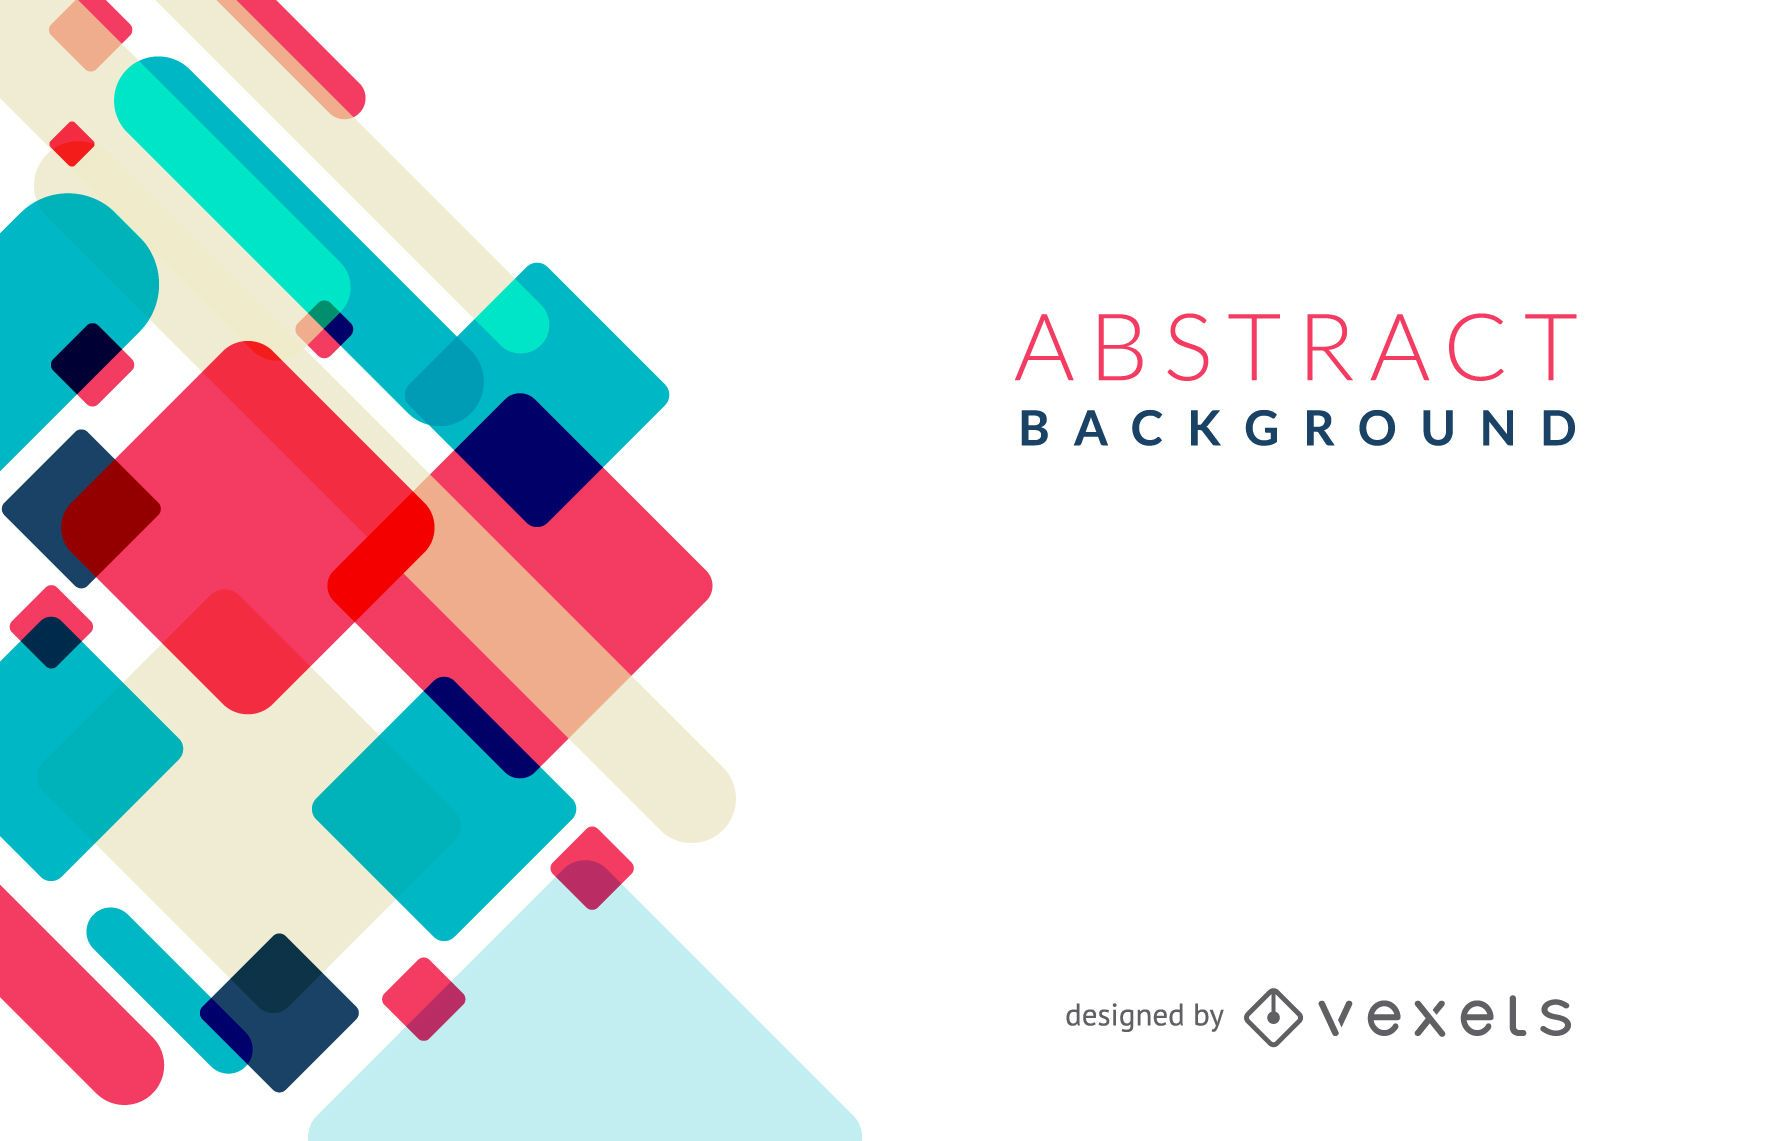 Colorful Abstract Background - Vector Download